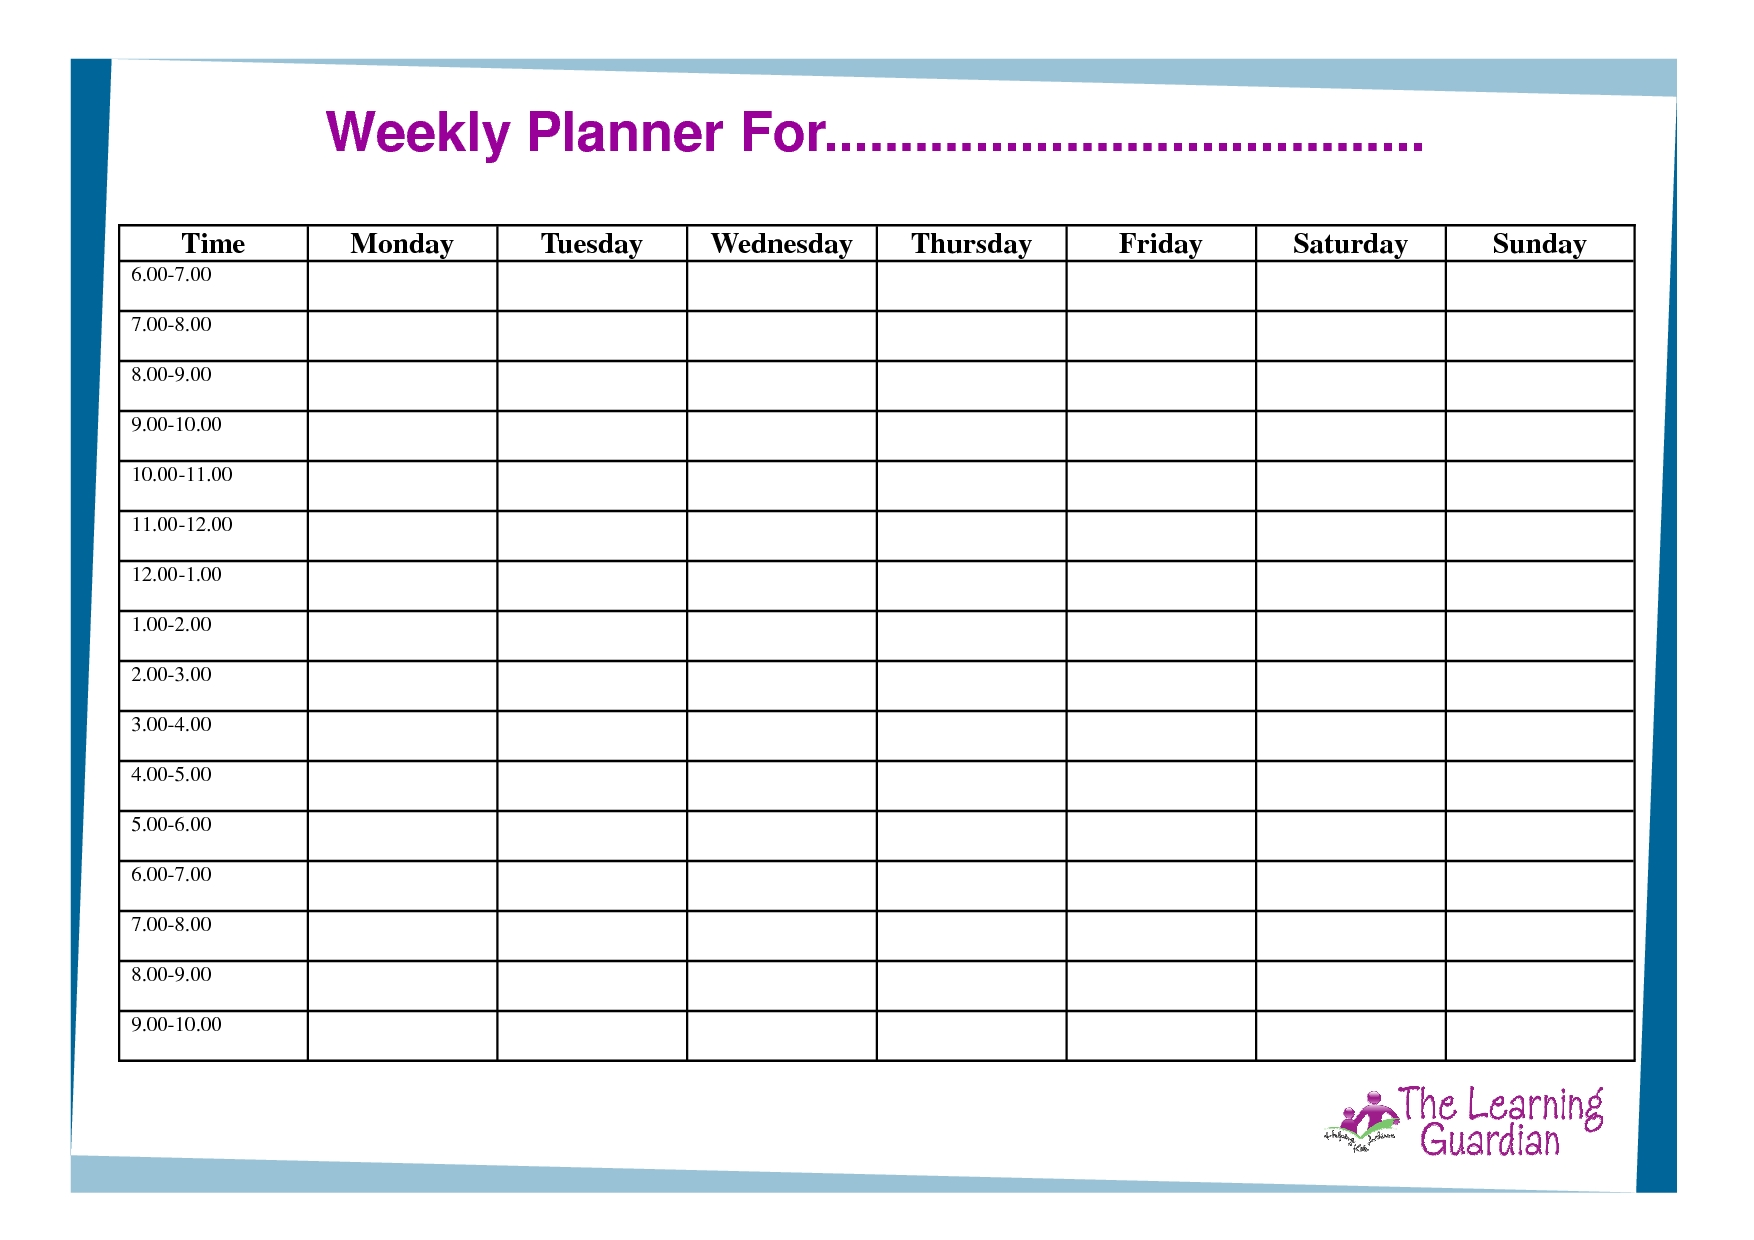 Weekly Schedule Template Monday Friday With Times - Firuse Blank Monday Through Friday Schedule Word